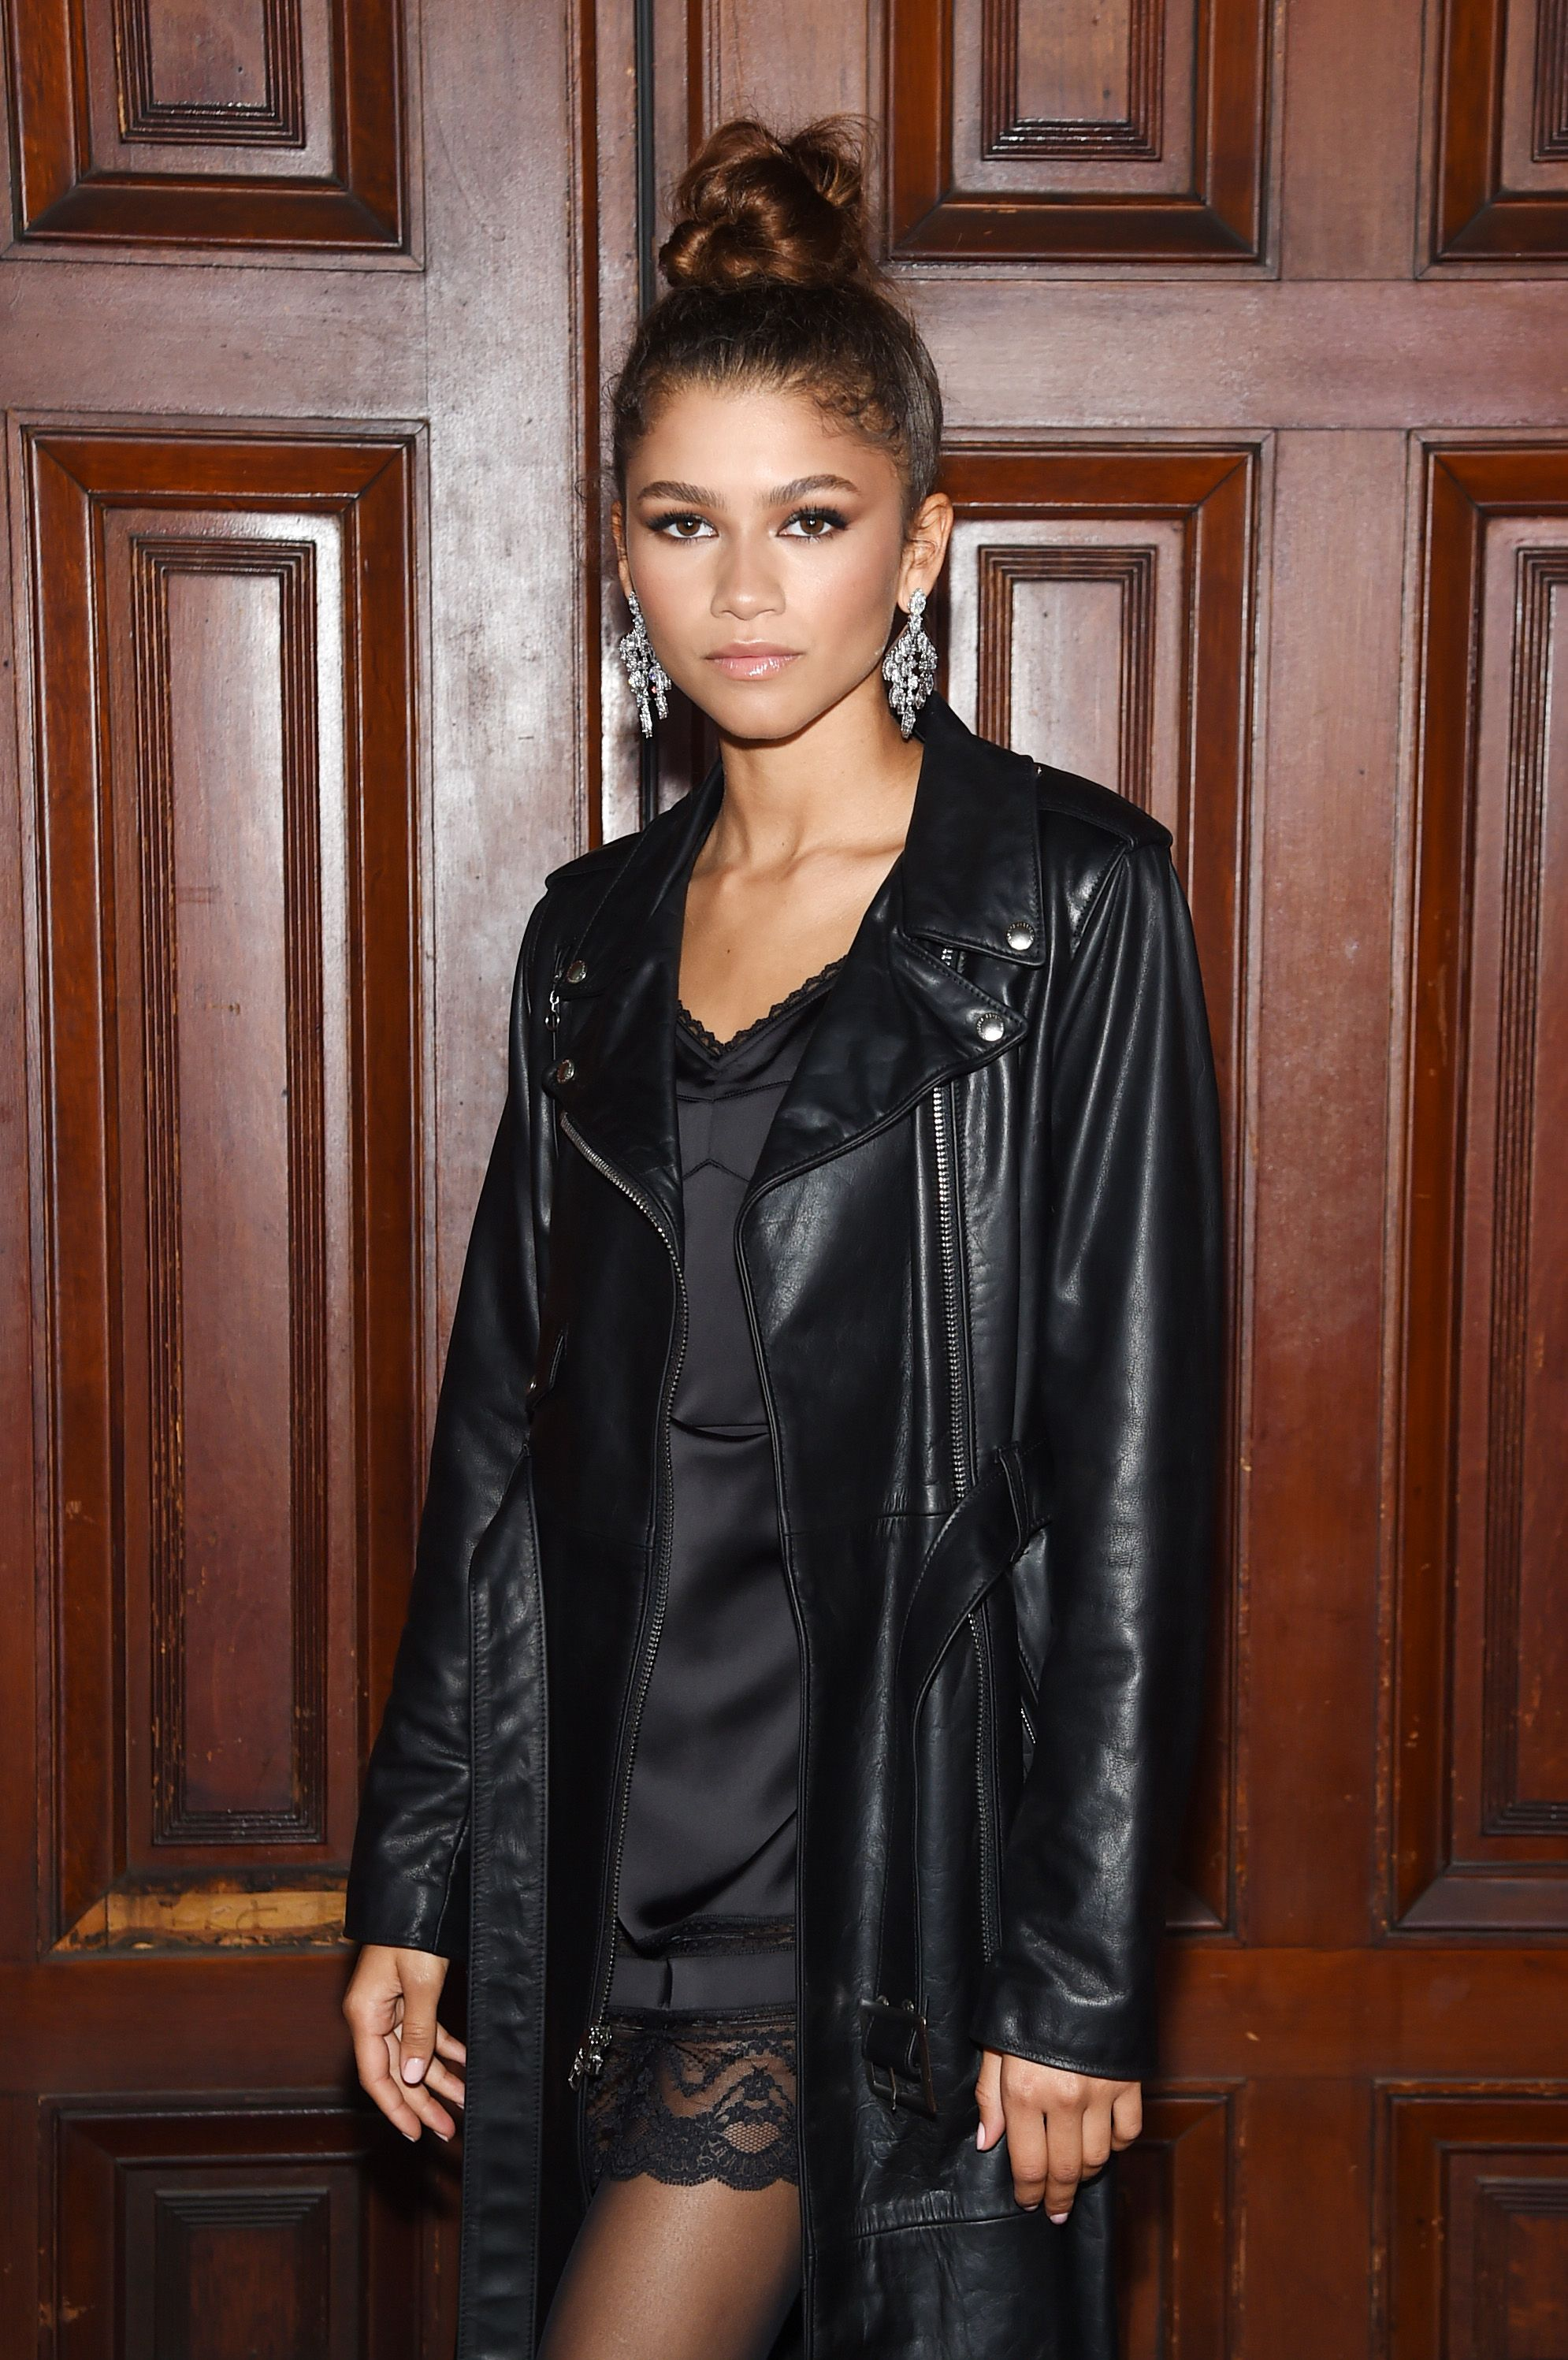 Zendaya's first big step to fame was her role in 'Shake It Up' / Getty Images